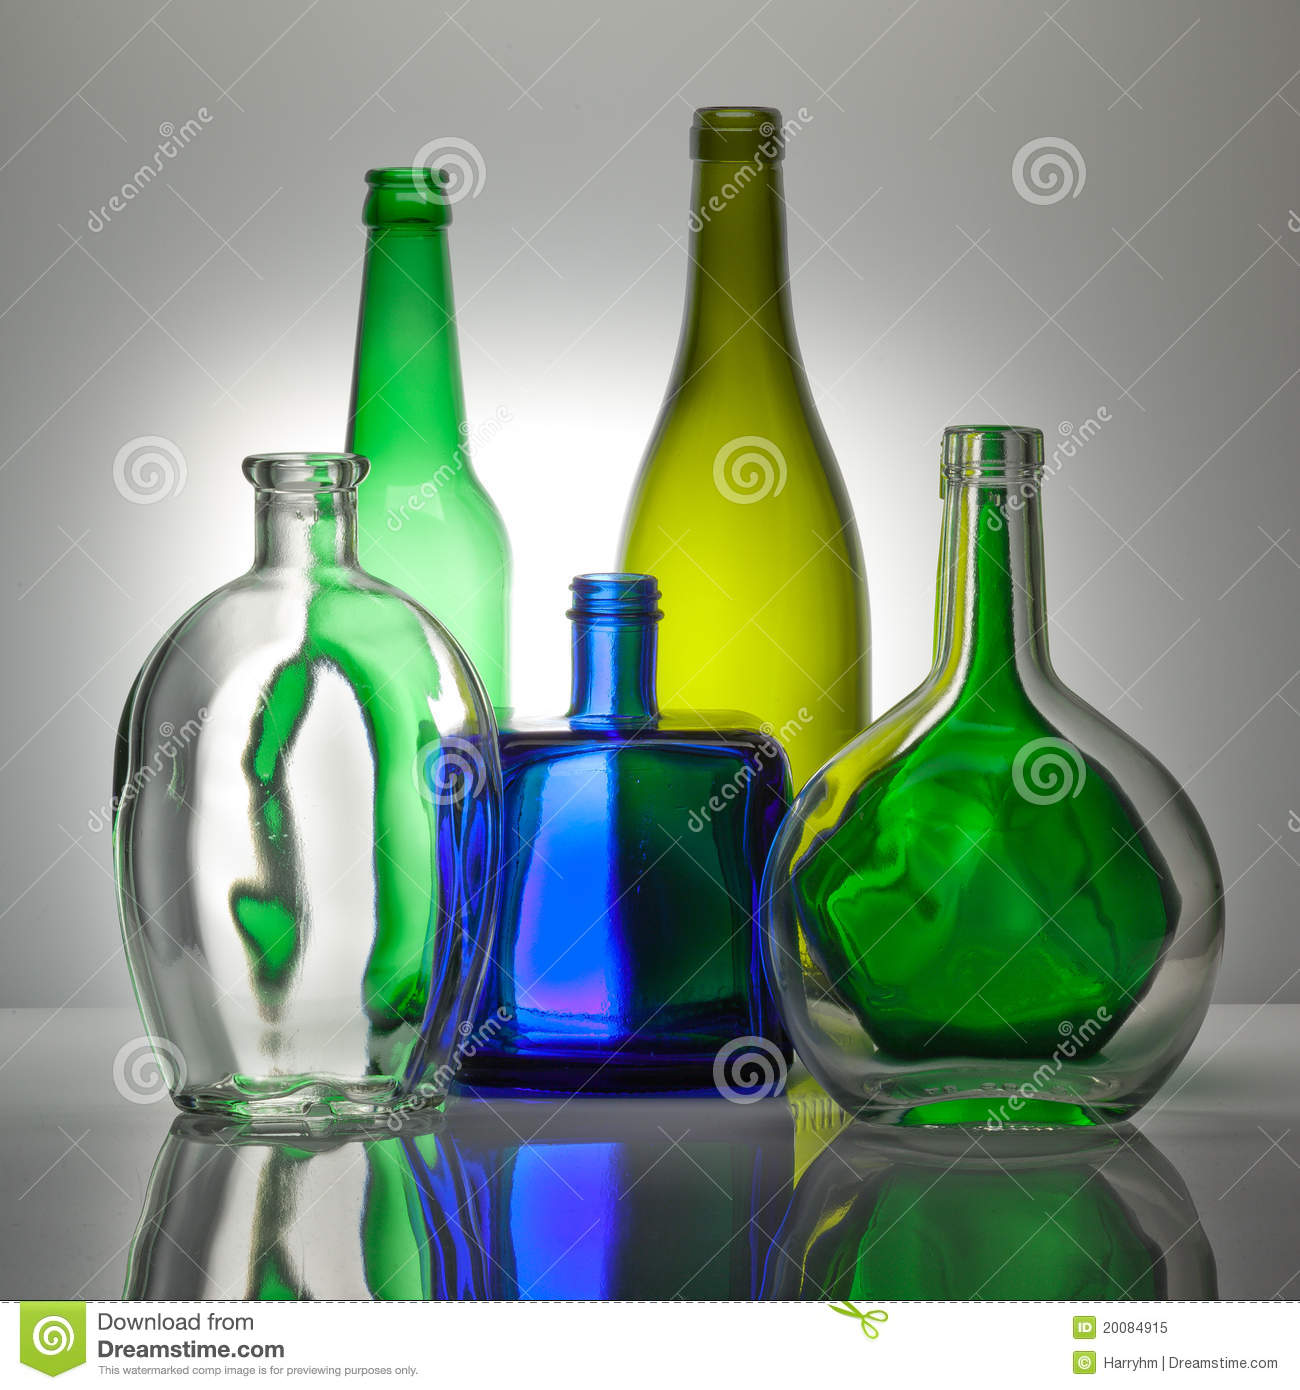 Composition From Color Glass Bottles Stock Image - Image of ...